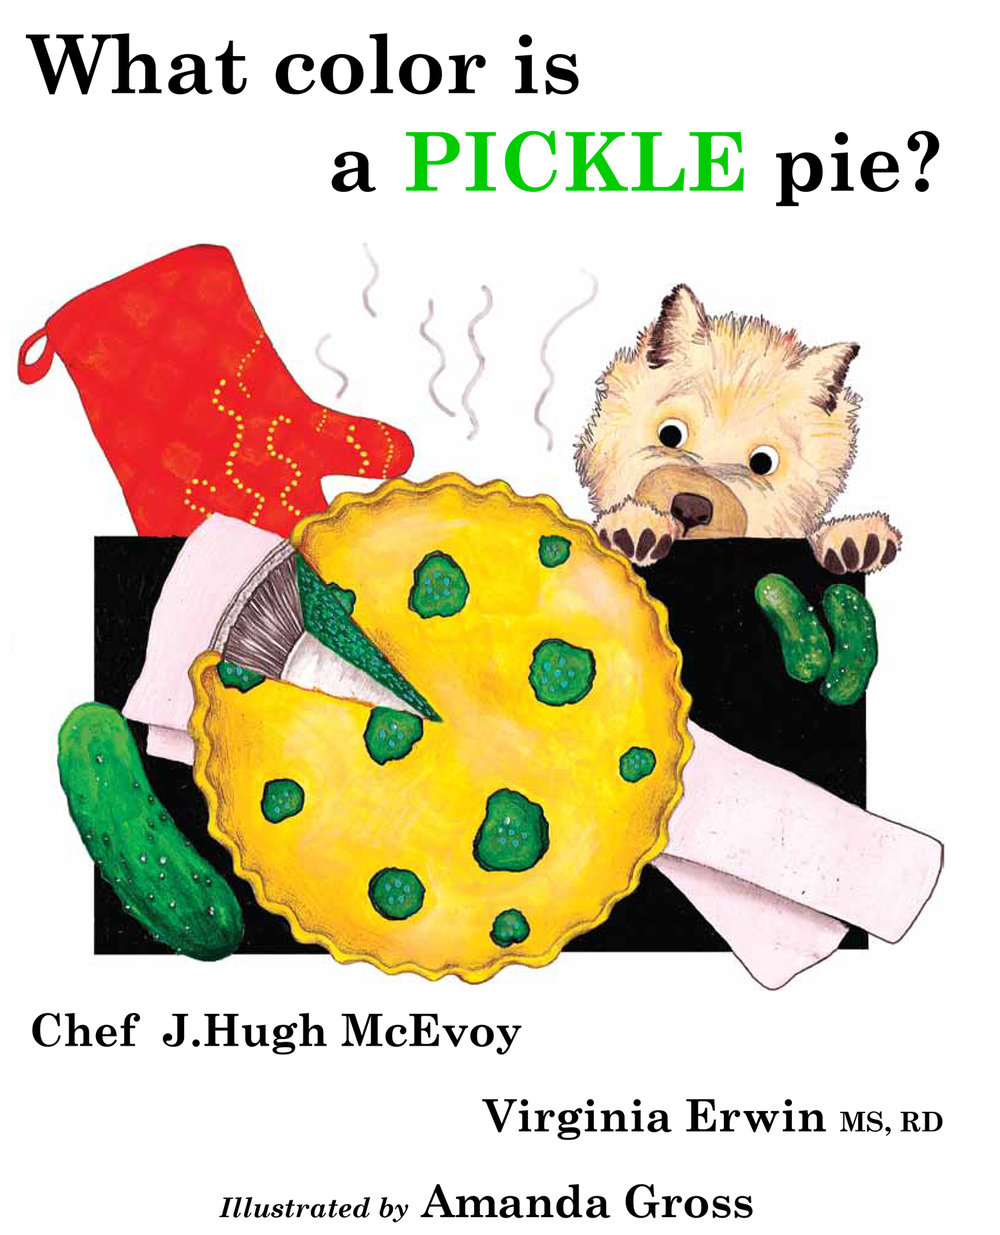 what_color_is_pickle_pie.jpg